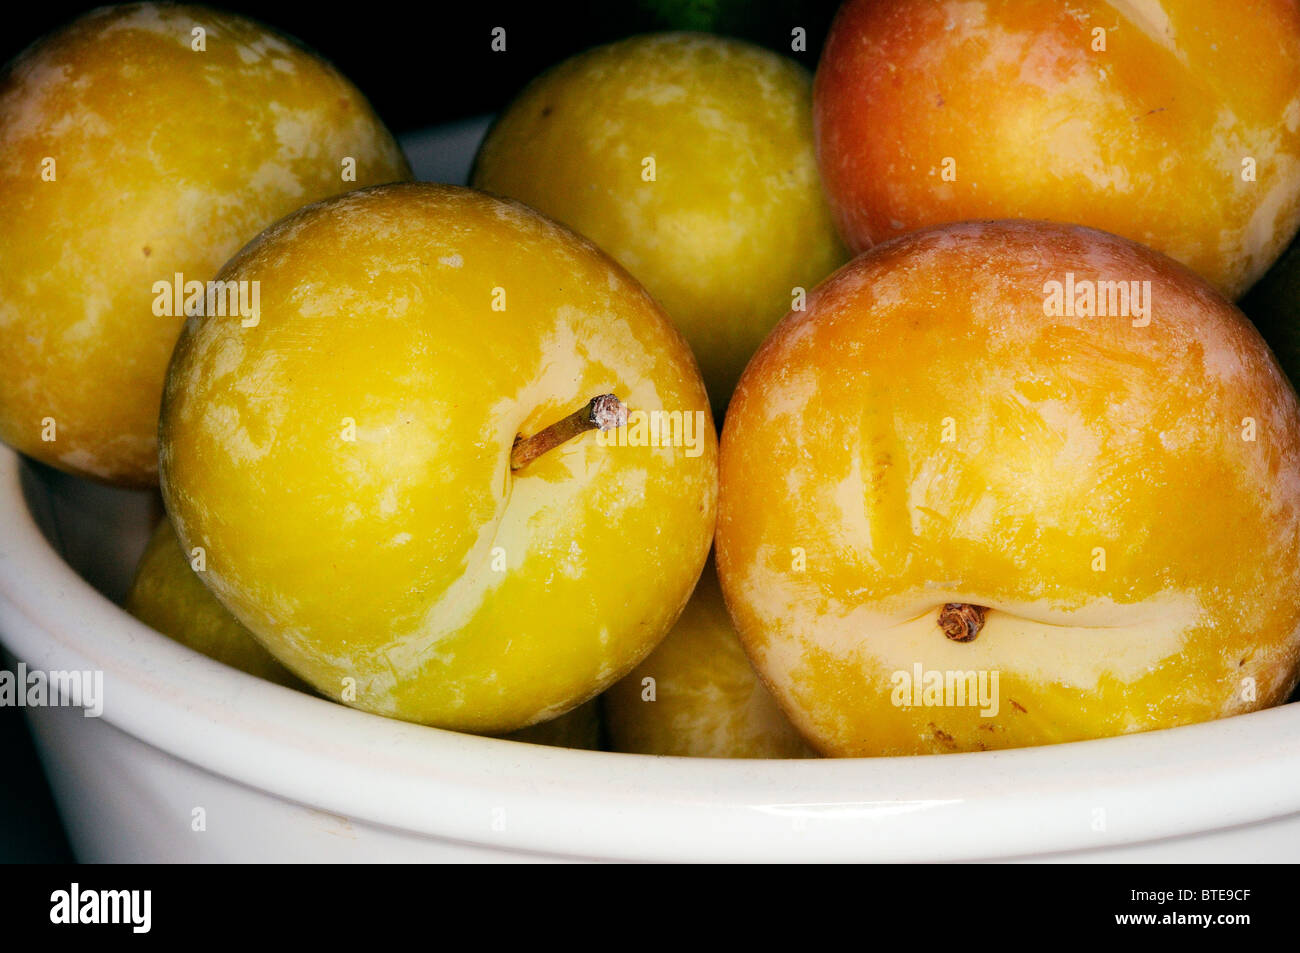 Yellow plums in bowl - Stock Image